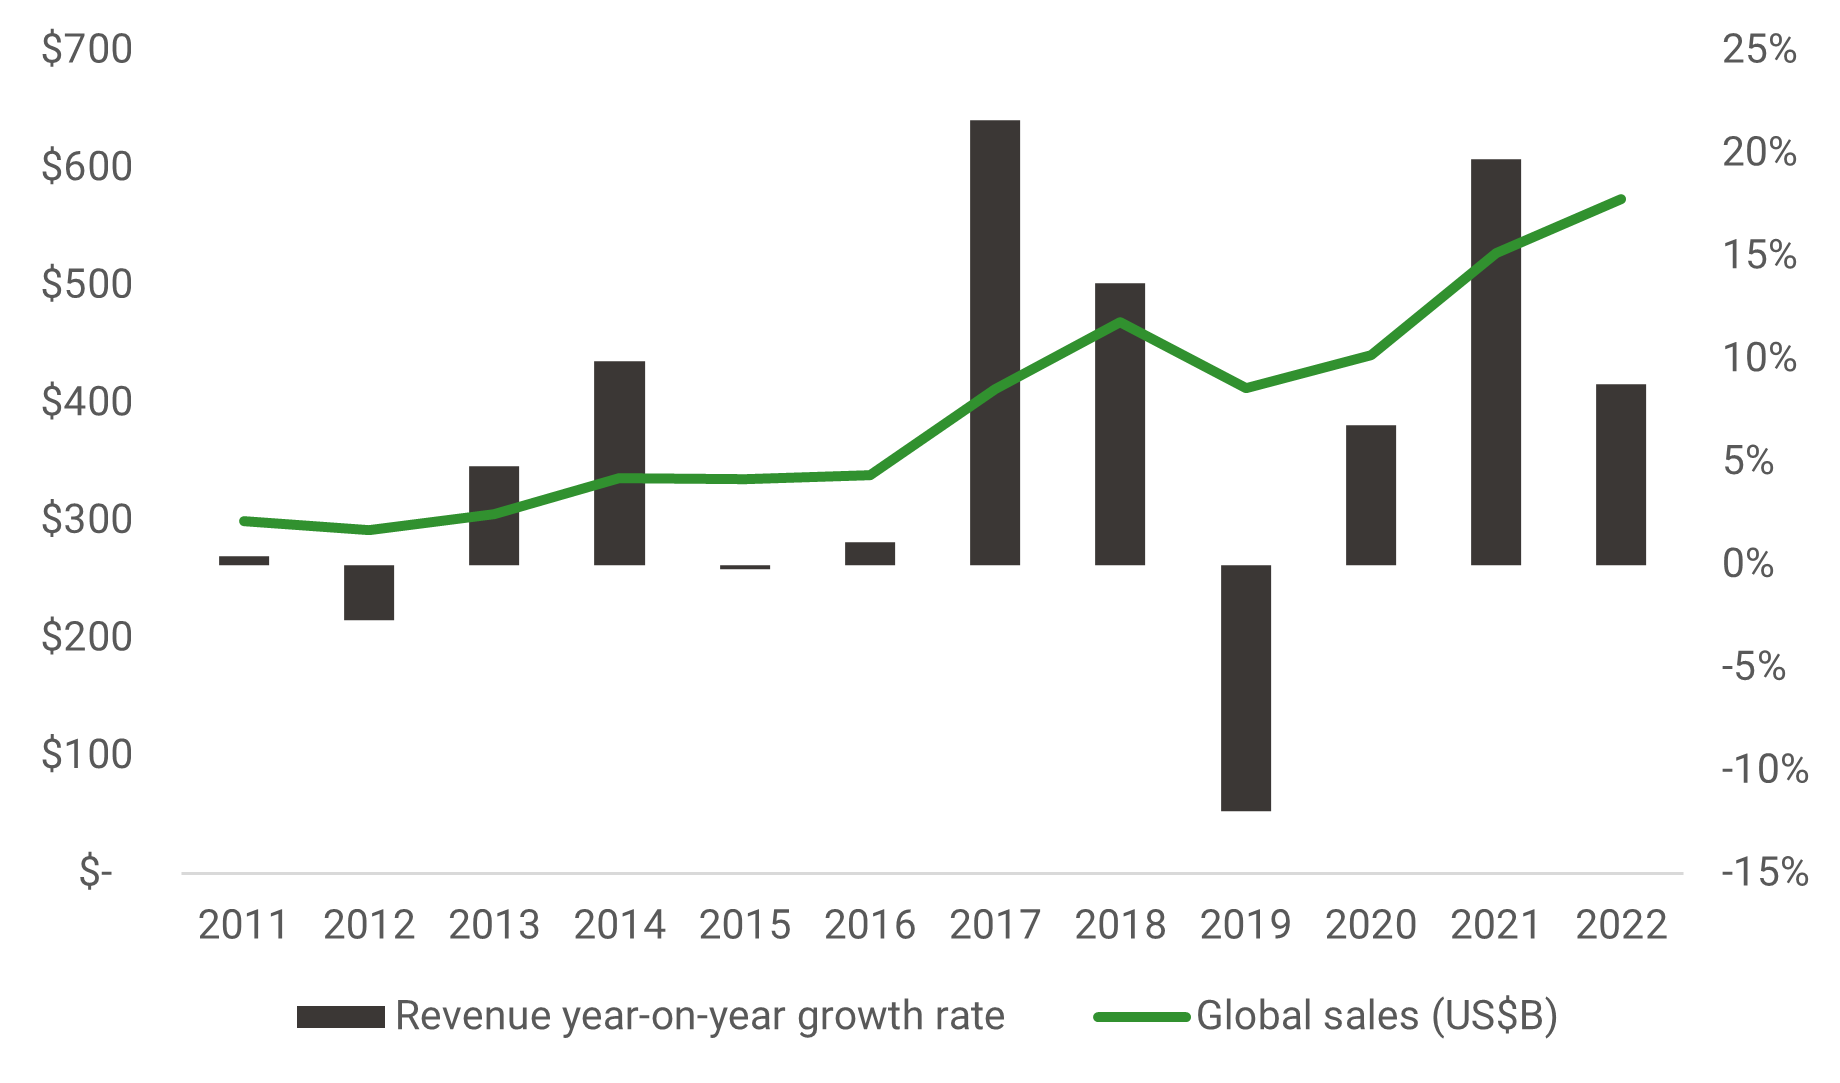 Semiconductor_industry_has_seen_strong_sales_growth_b6007a5ced.png